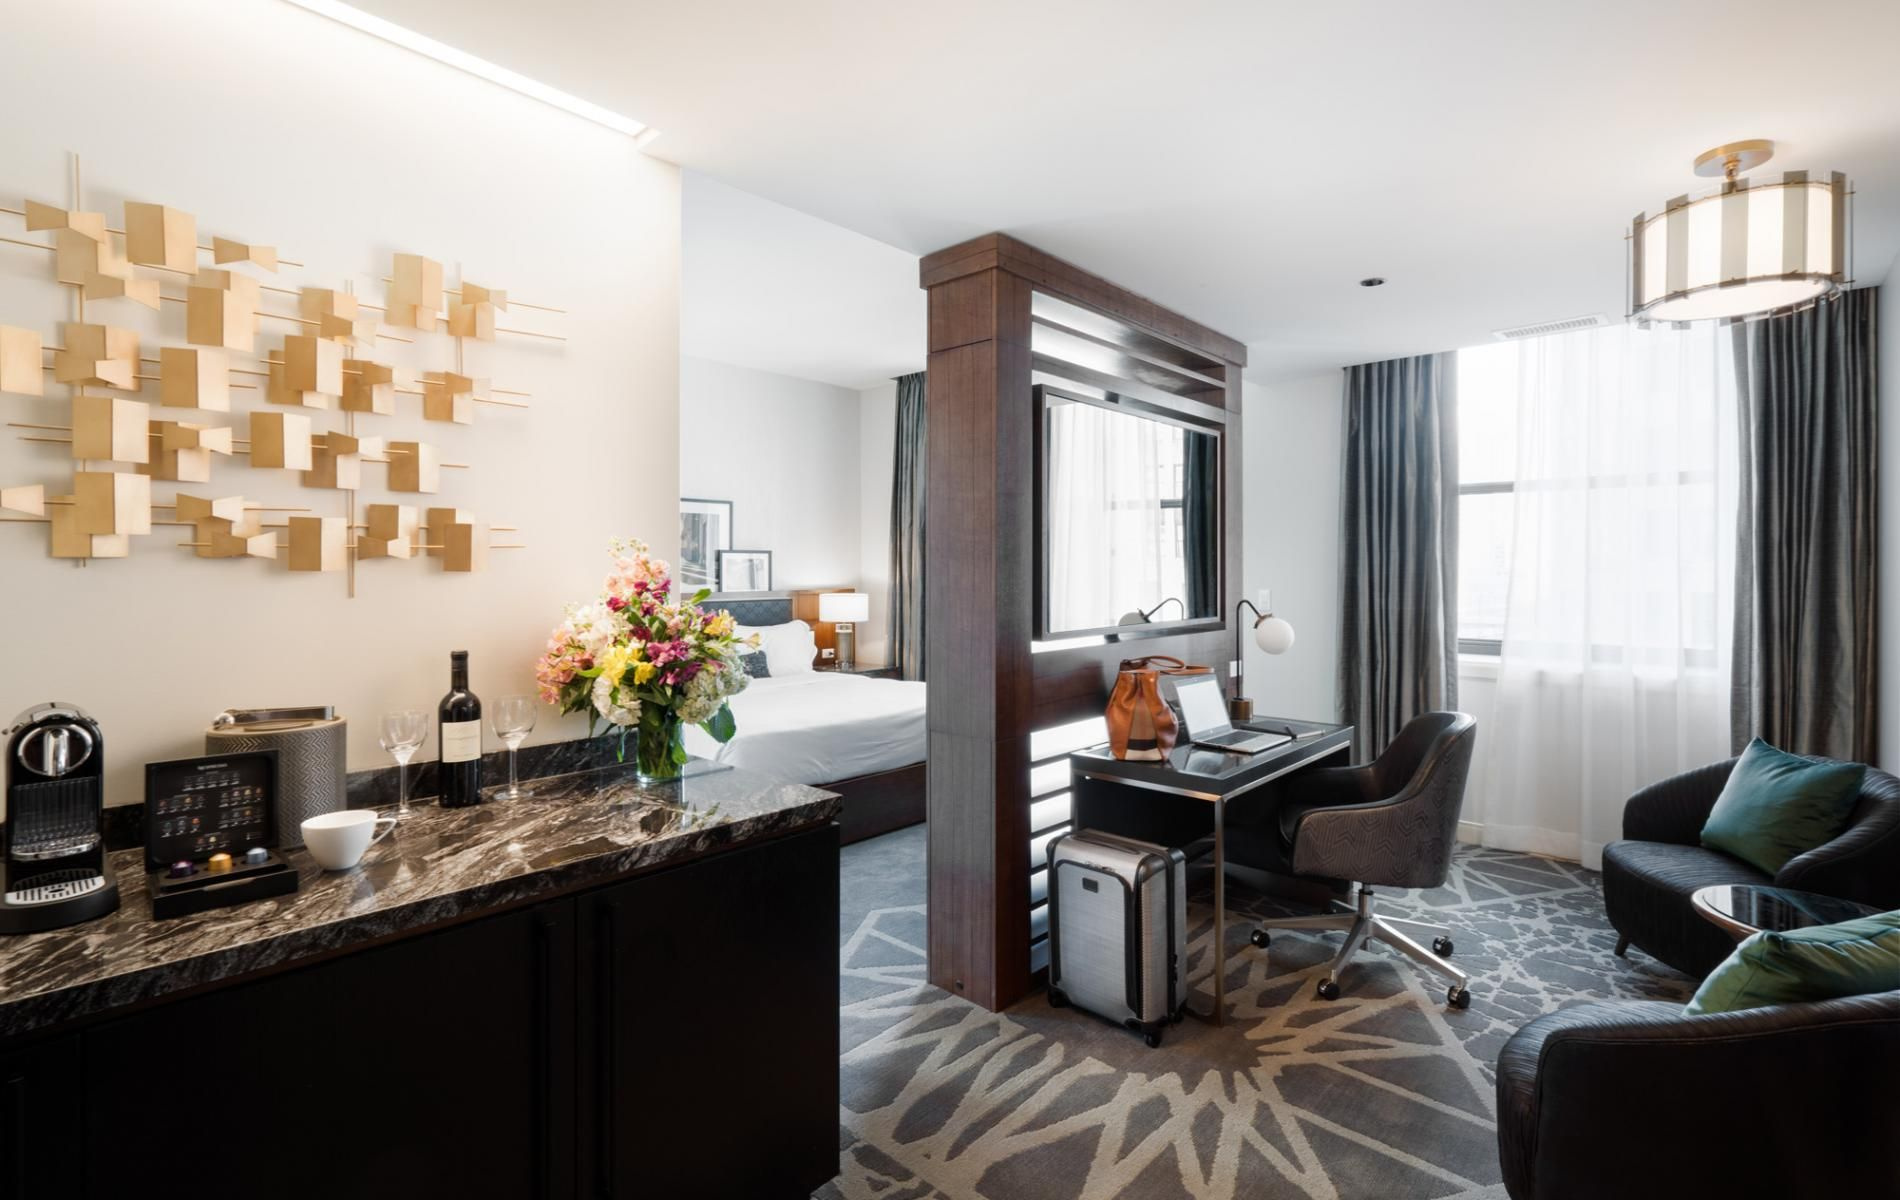 LondonHouse Chicago | London house hotel, Luxury interior ...